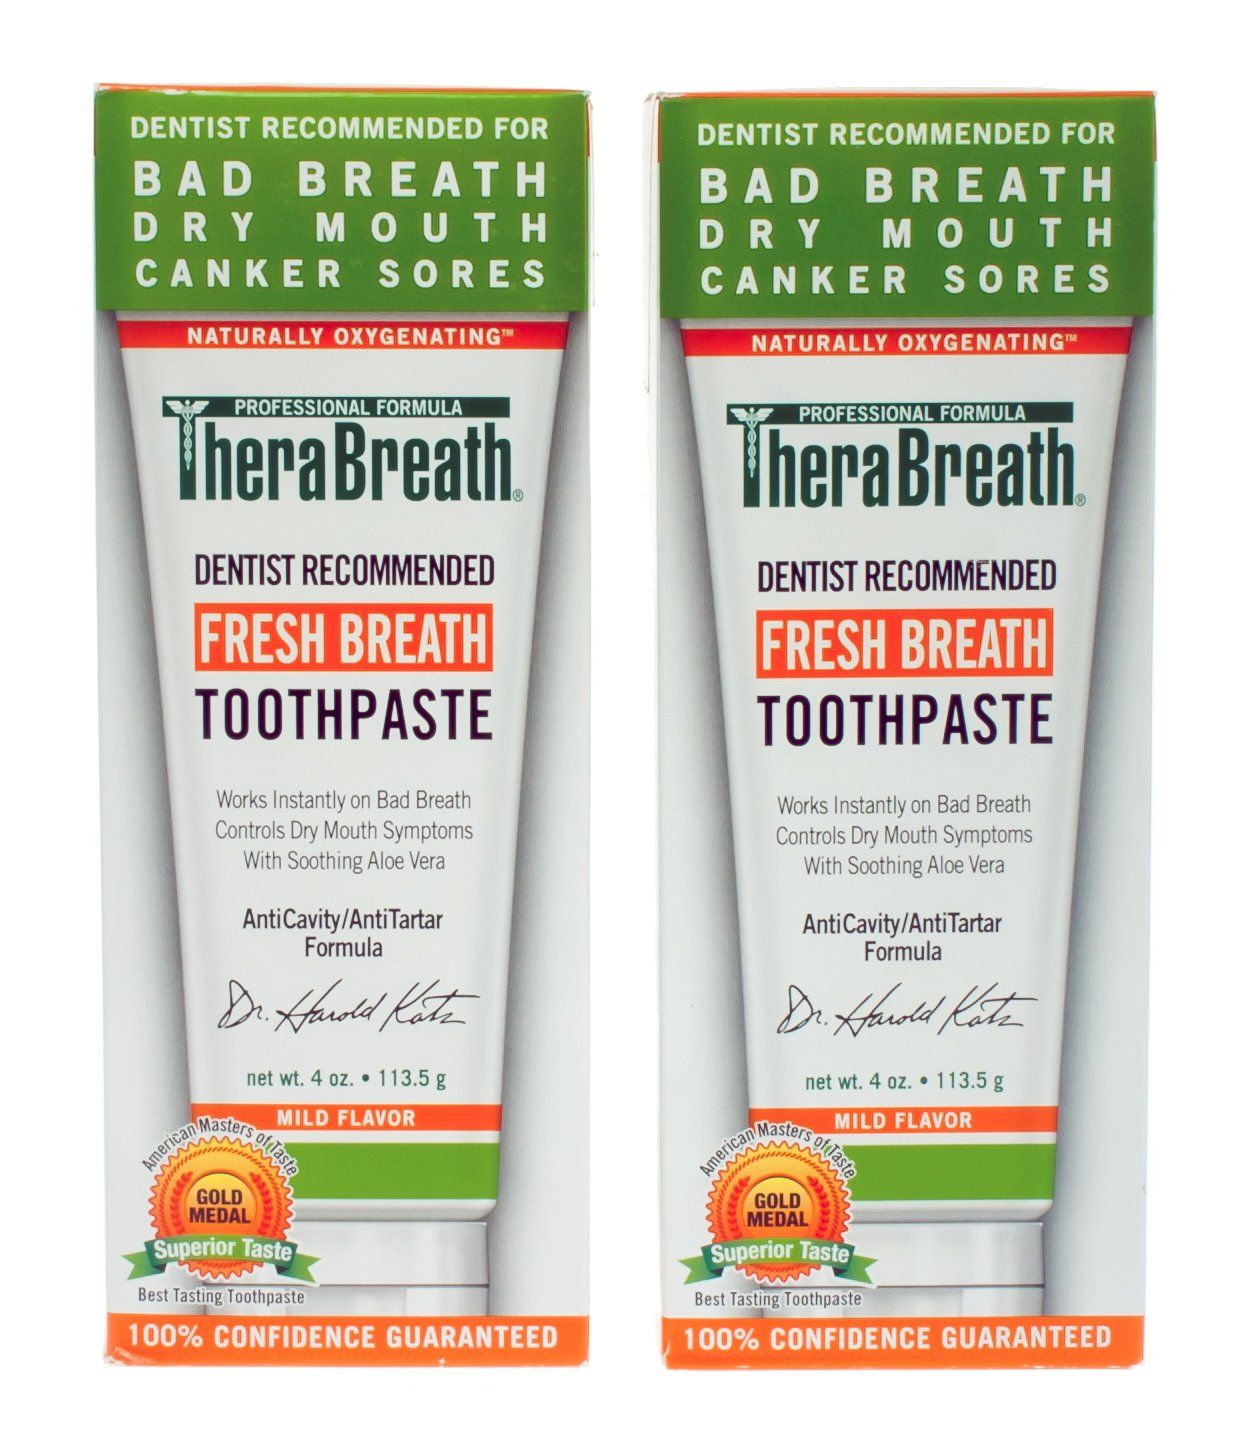 Amazon.com: TheraBreath Dentist Recommended Fresh Breath Dry Mouth Toothpaste, Mild Mint, 4 Ounce (Pack of 2): Beauty